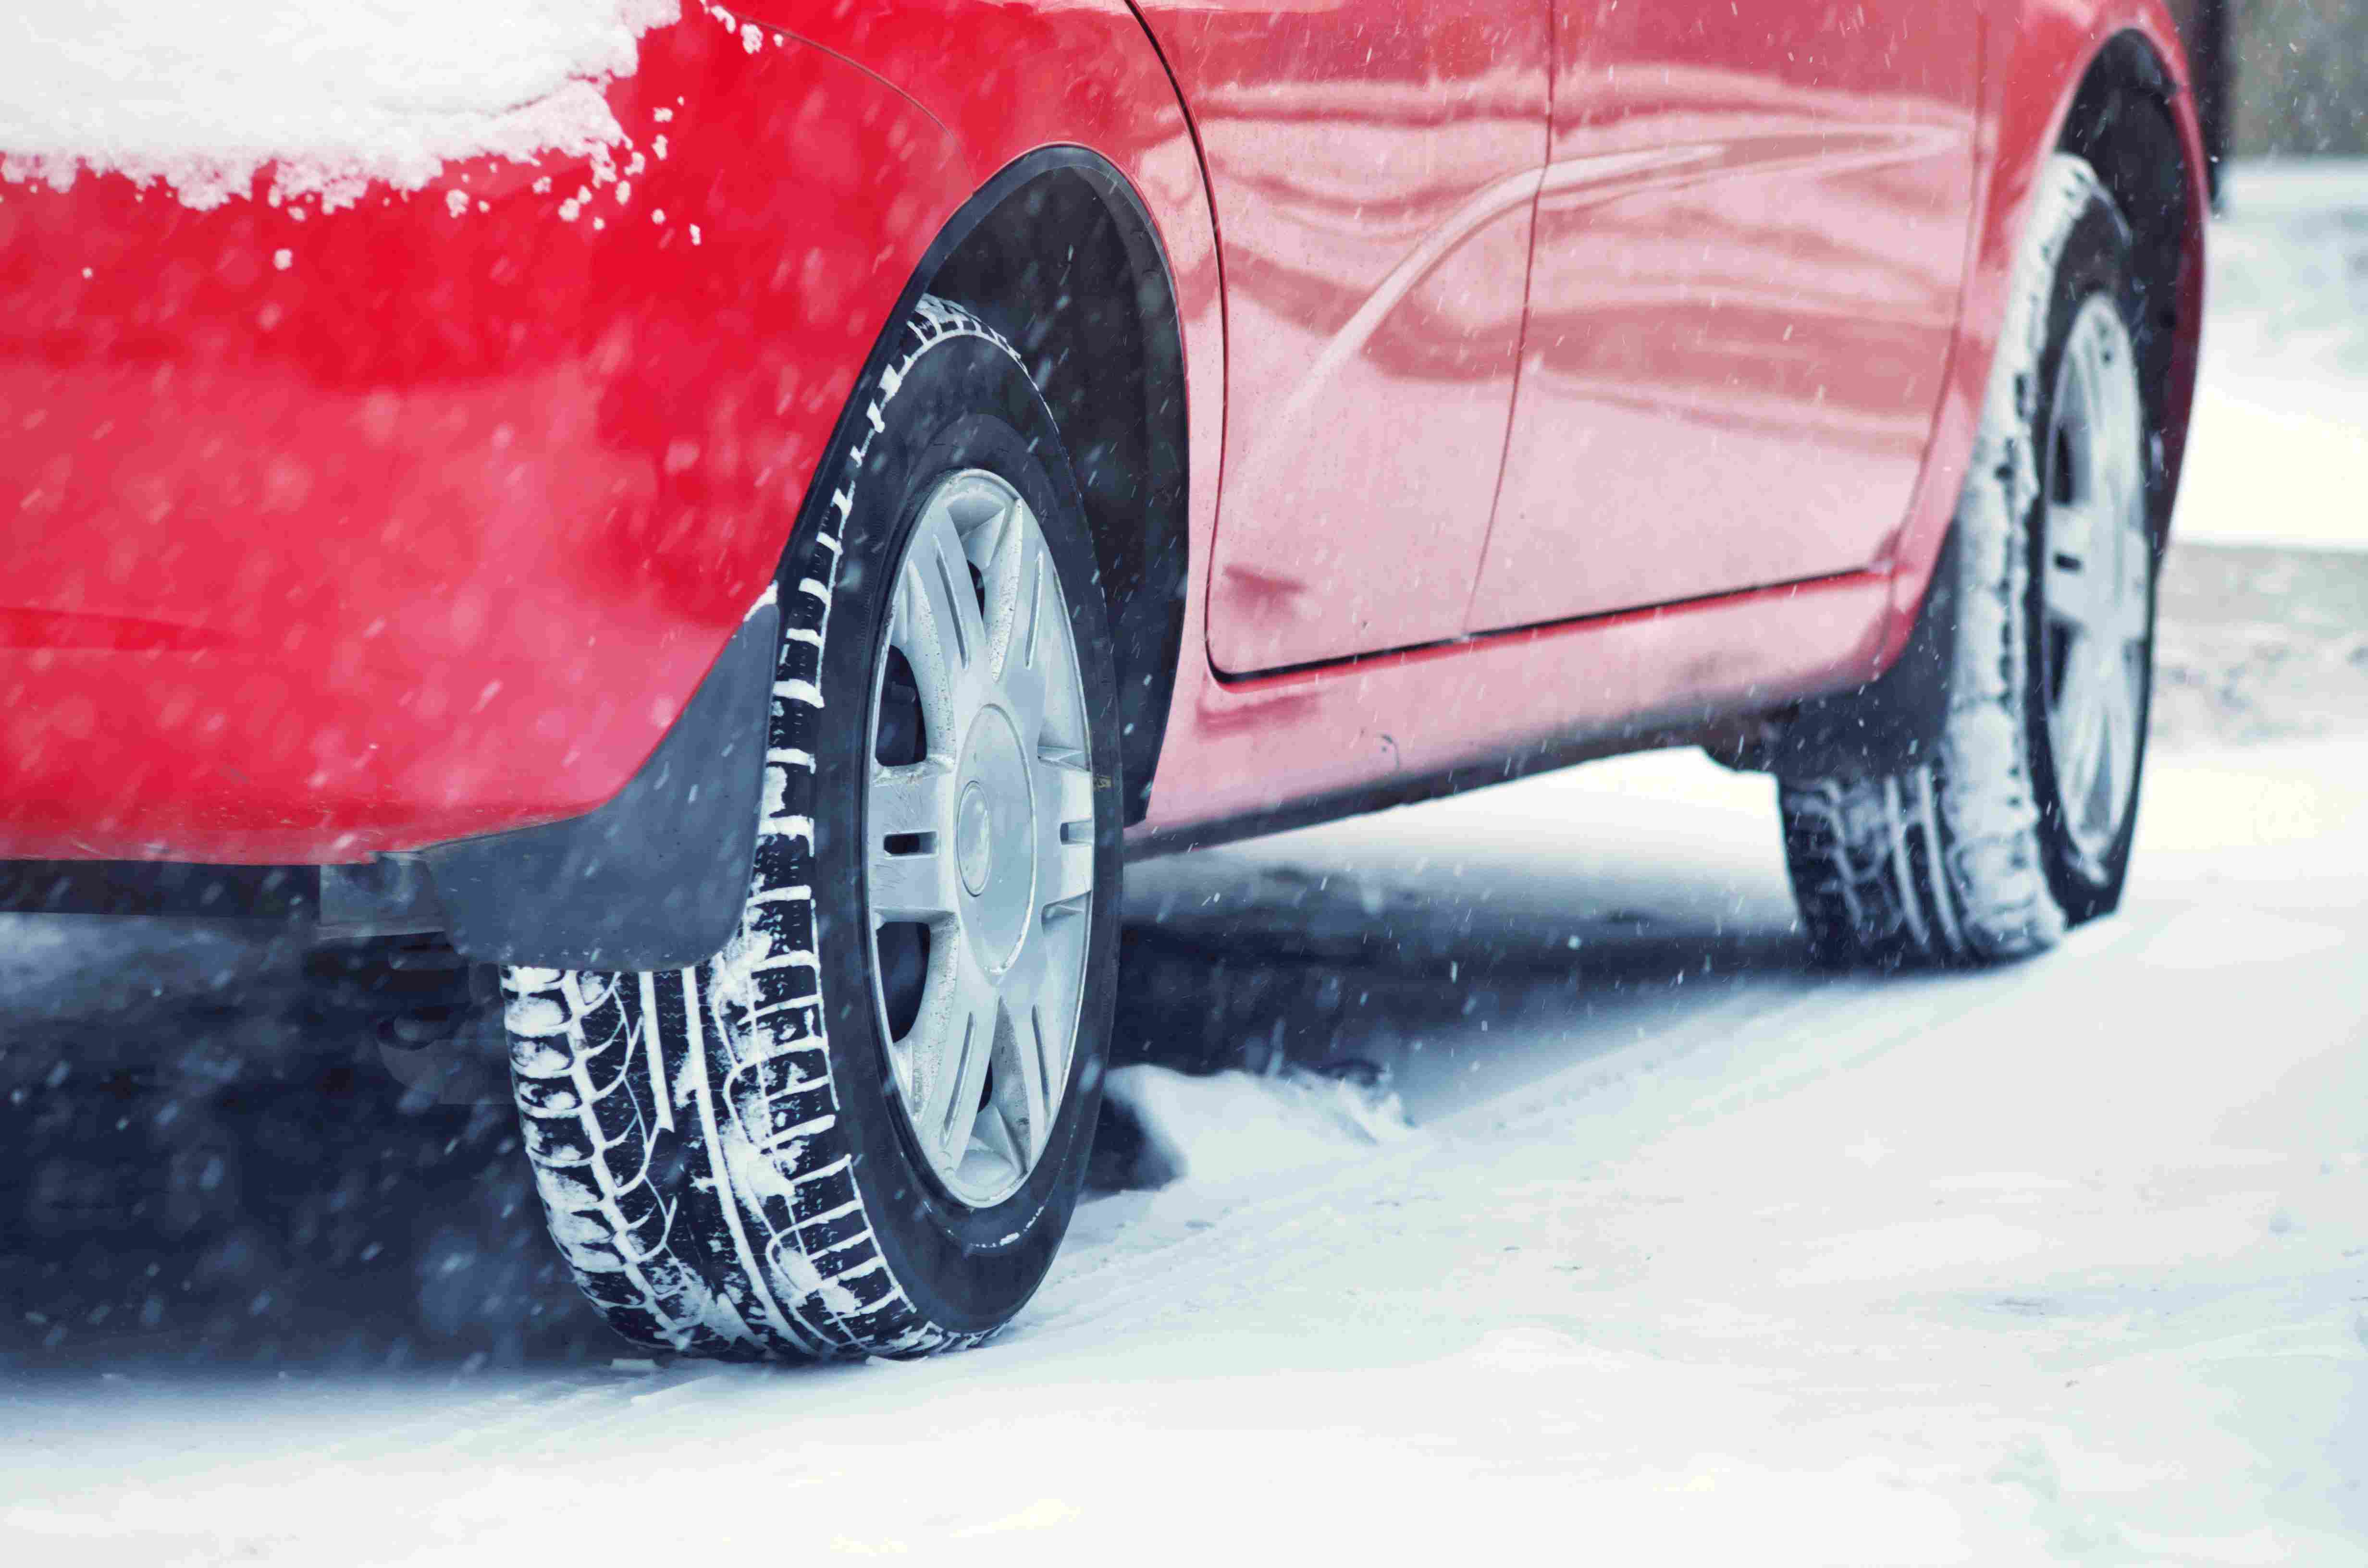 Changing Tyres for the Winter? Here's What You Should Know